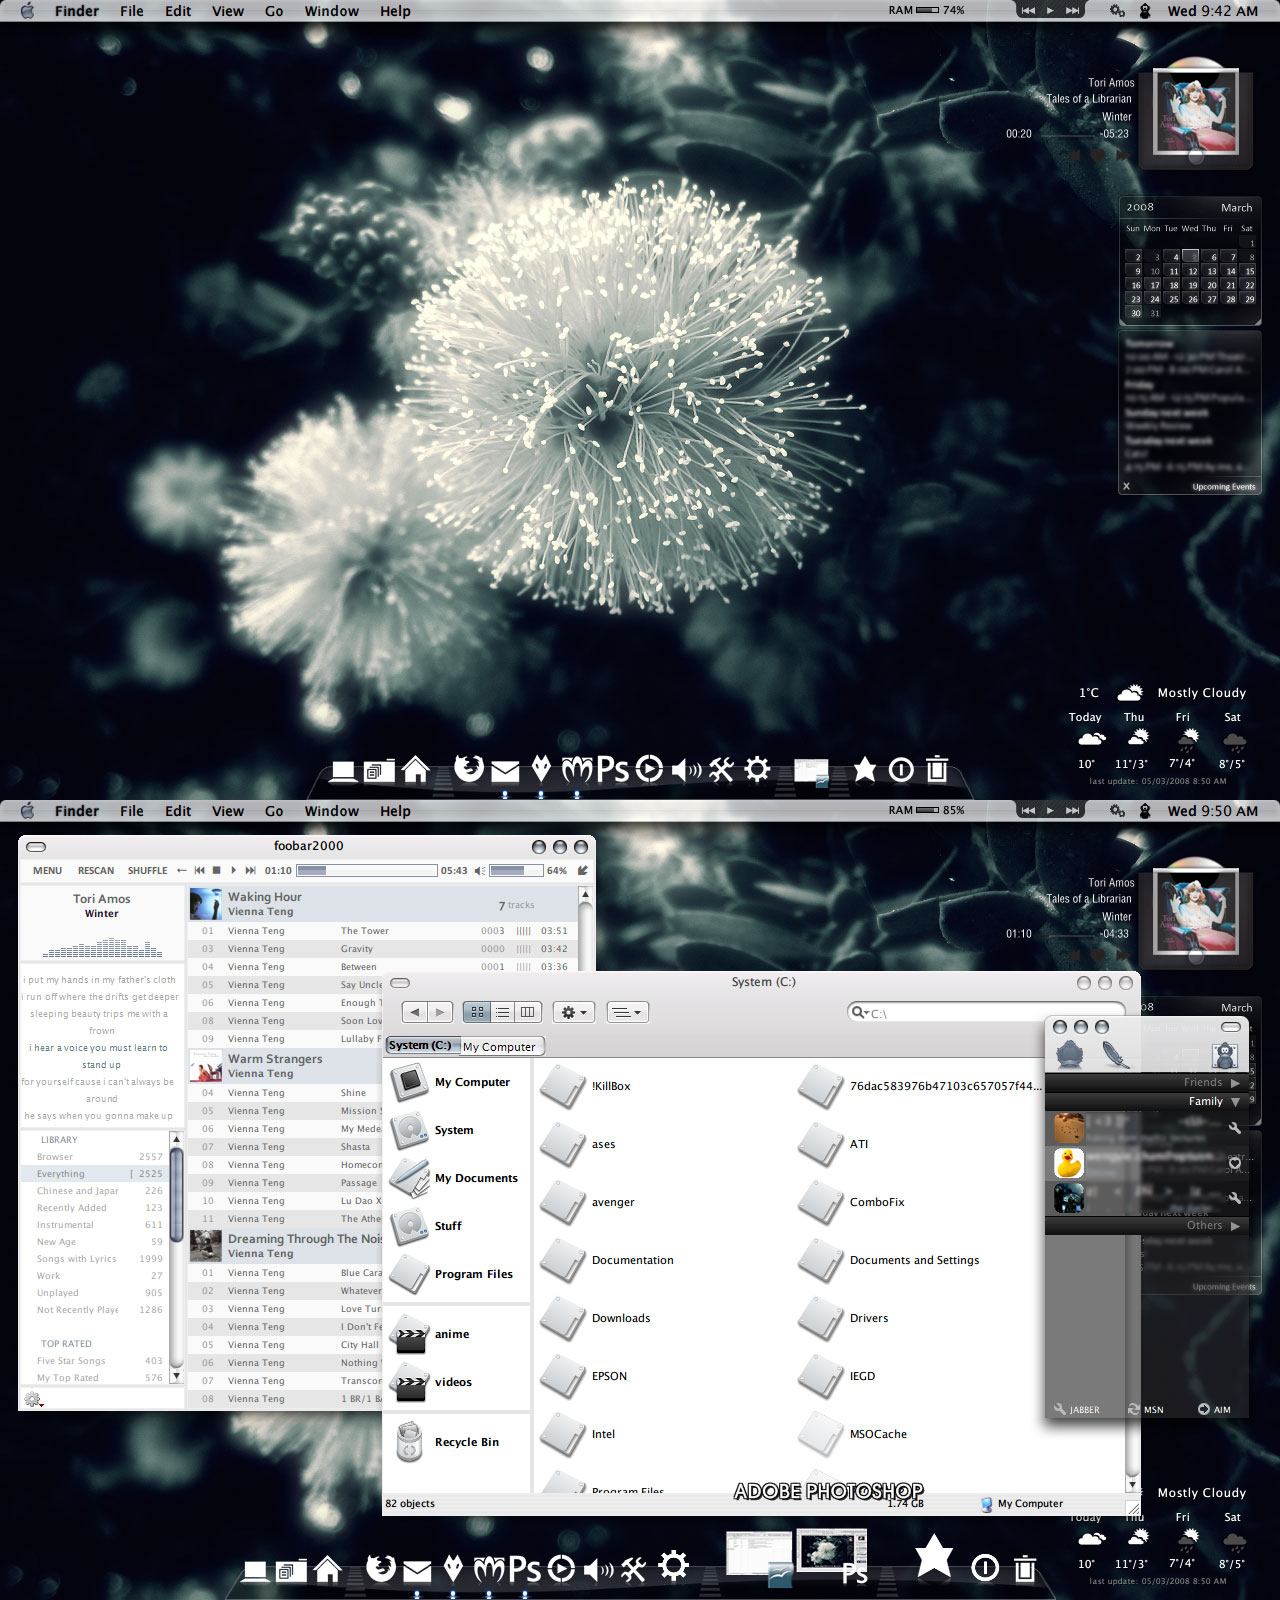 Desktop, 5 March 2008 by chocolatemuffins